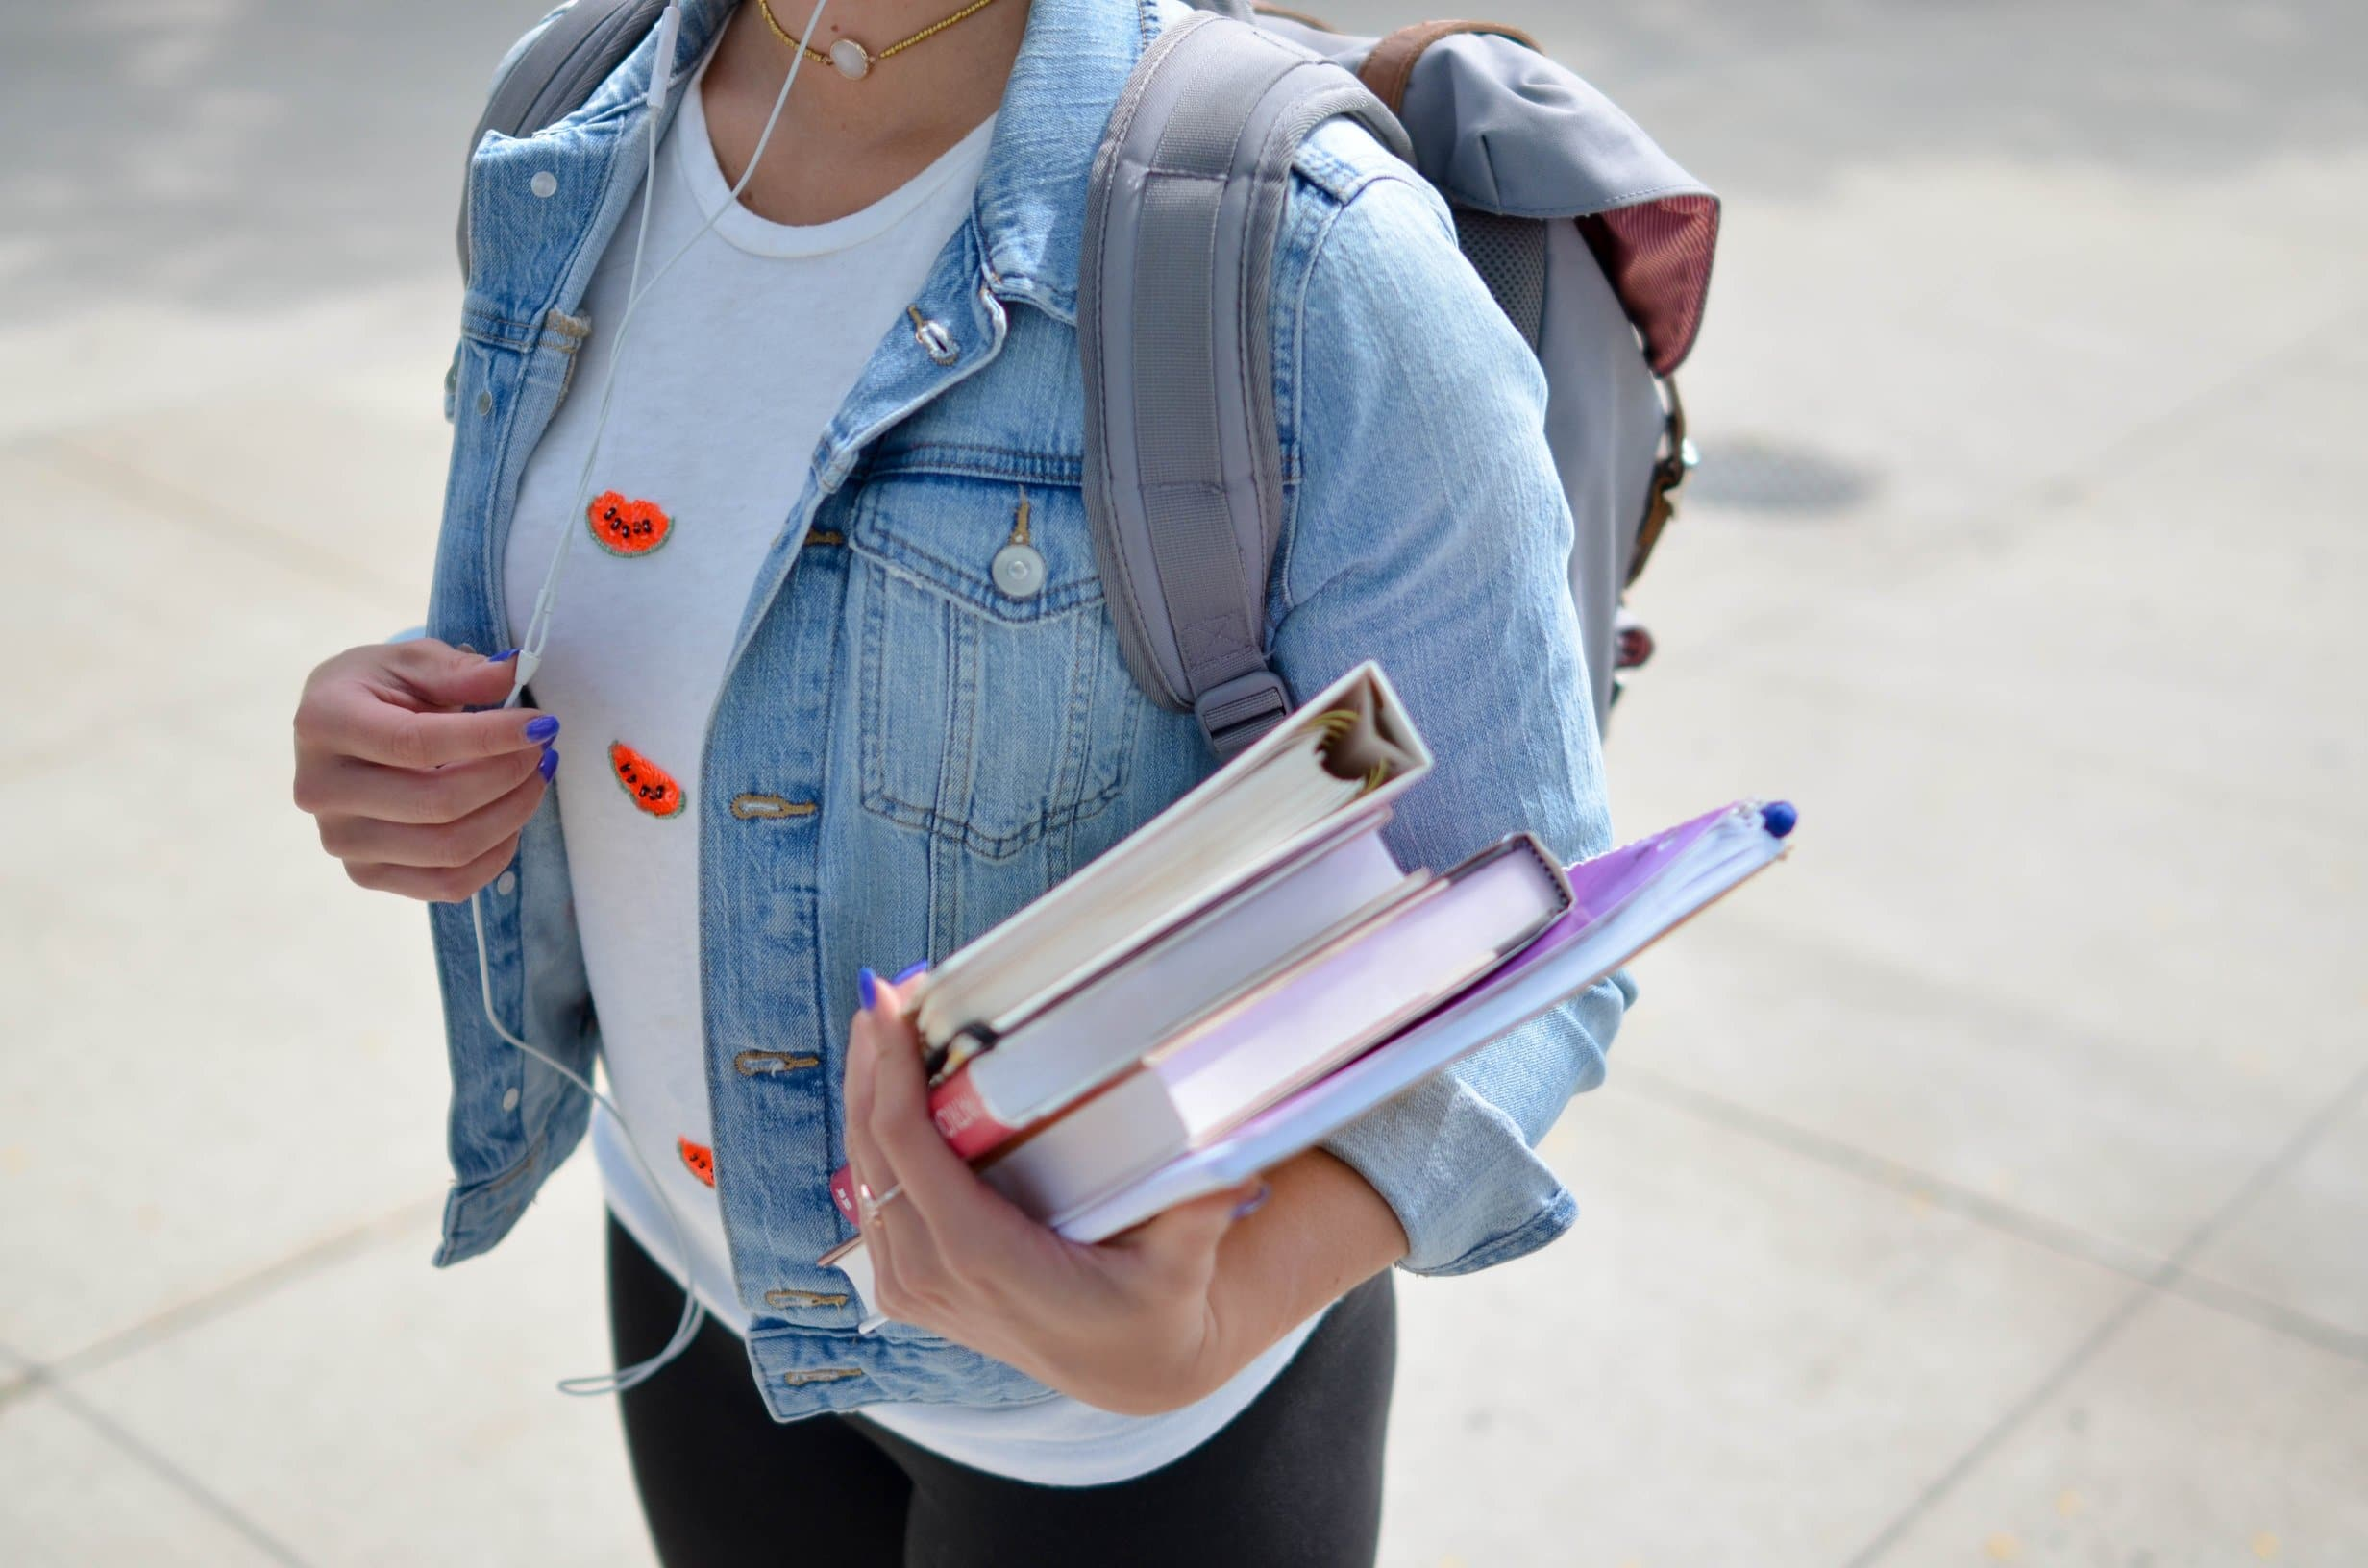 female student at a campus holding books